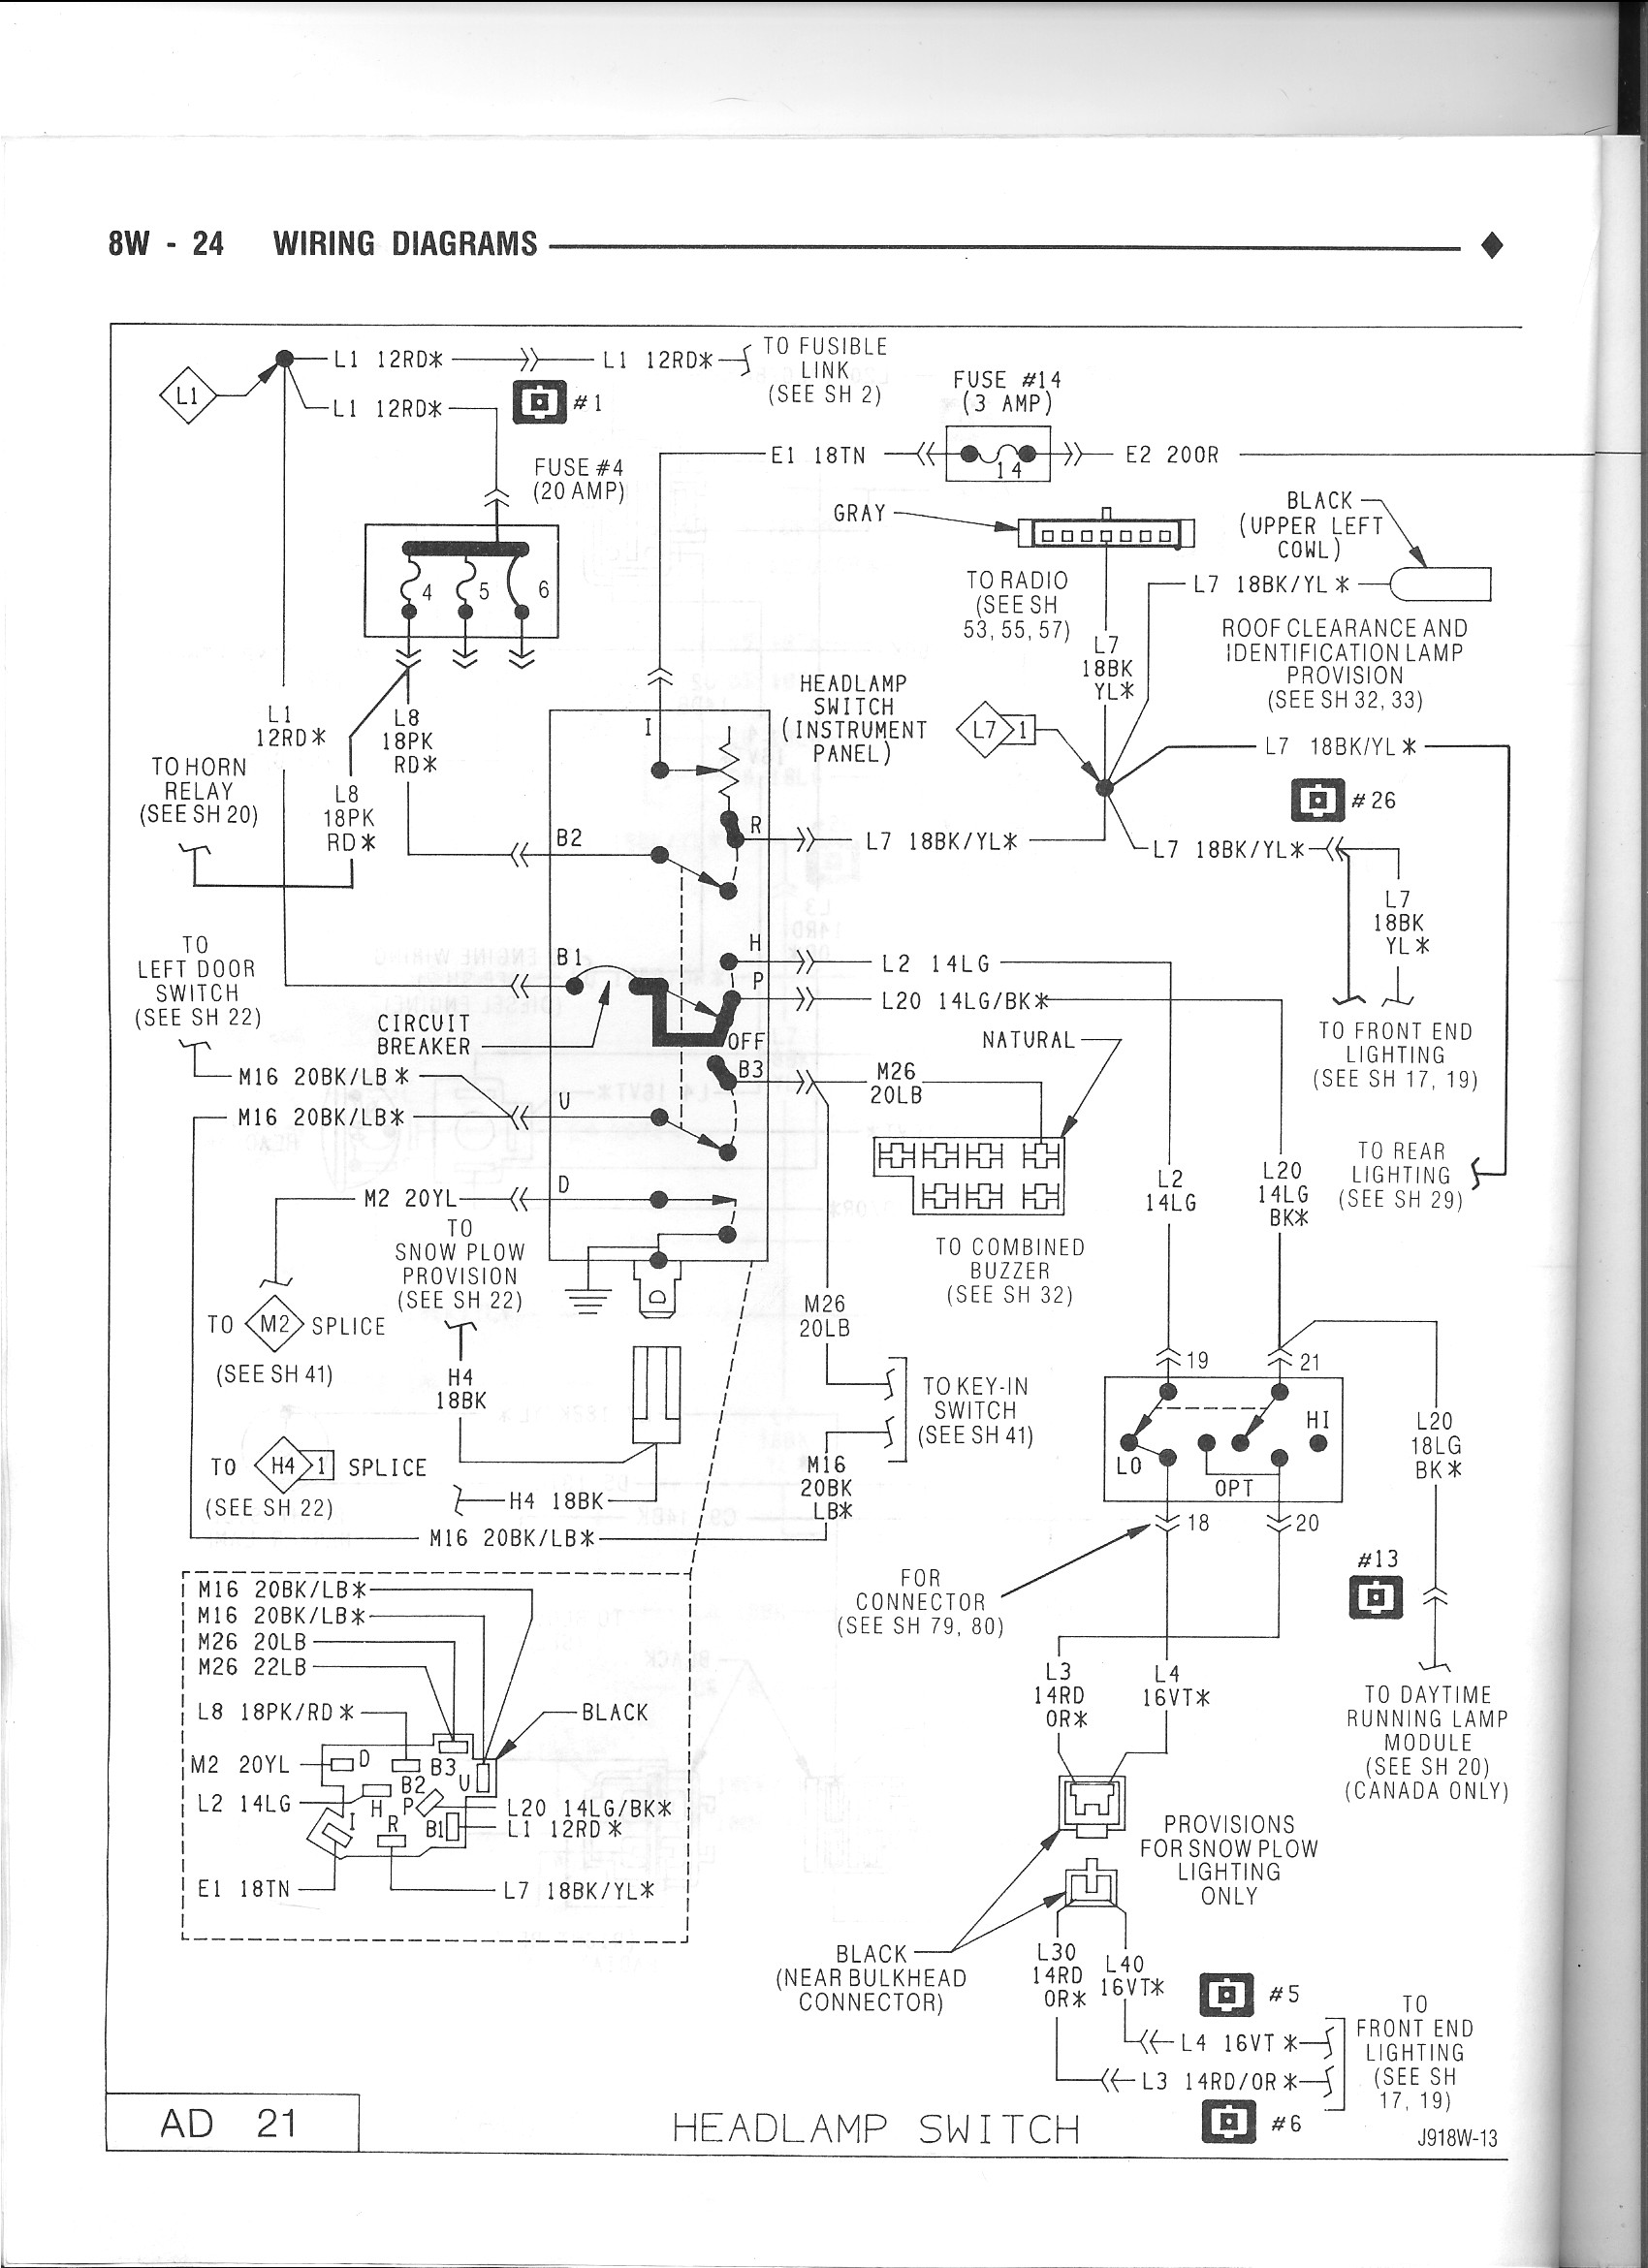 Phenomenal Fog Lamp Wiring Diagram Basic Electronics Wiring Diagram Wiring Cloud Timewinrebemohammedshrineorg